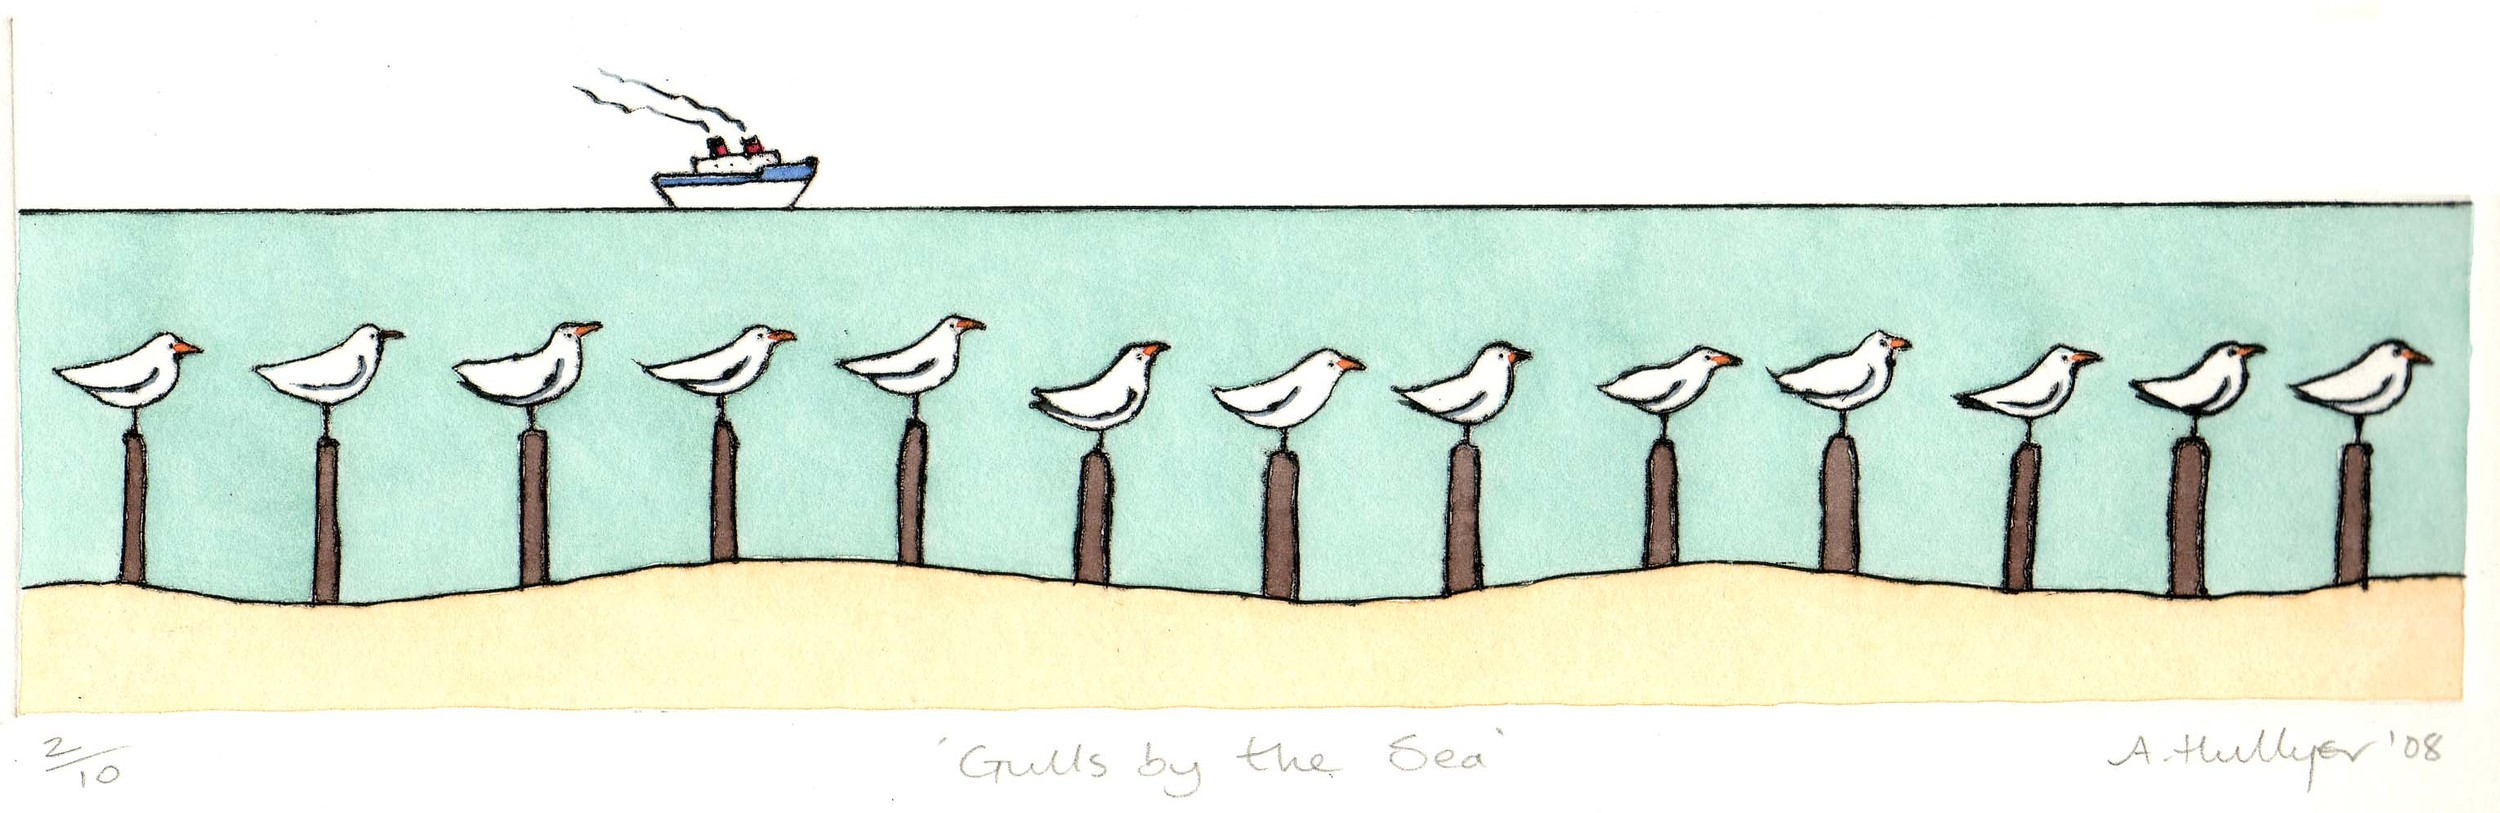 Gulls by the Sea  drypoint  25.5 x 8cm  SOLD OUT